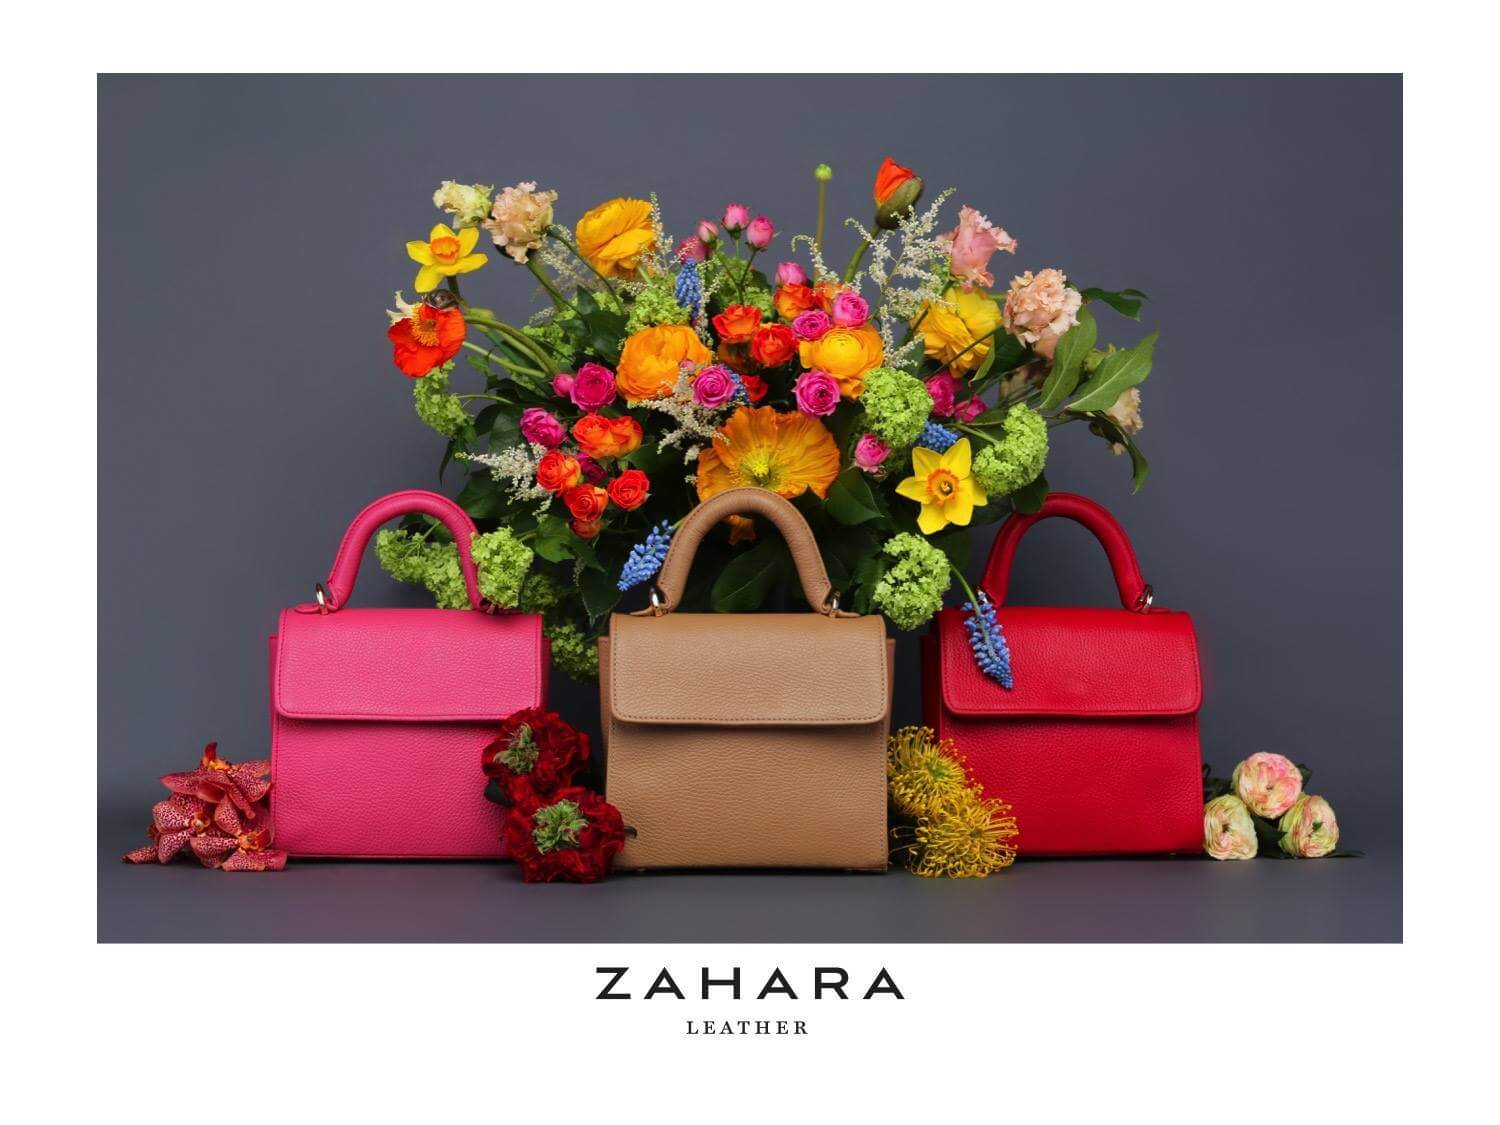 zahra leather